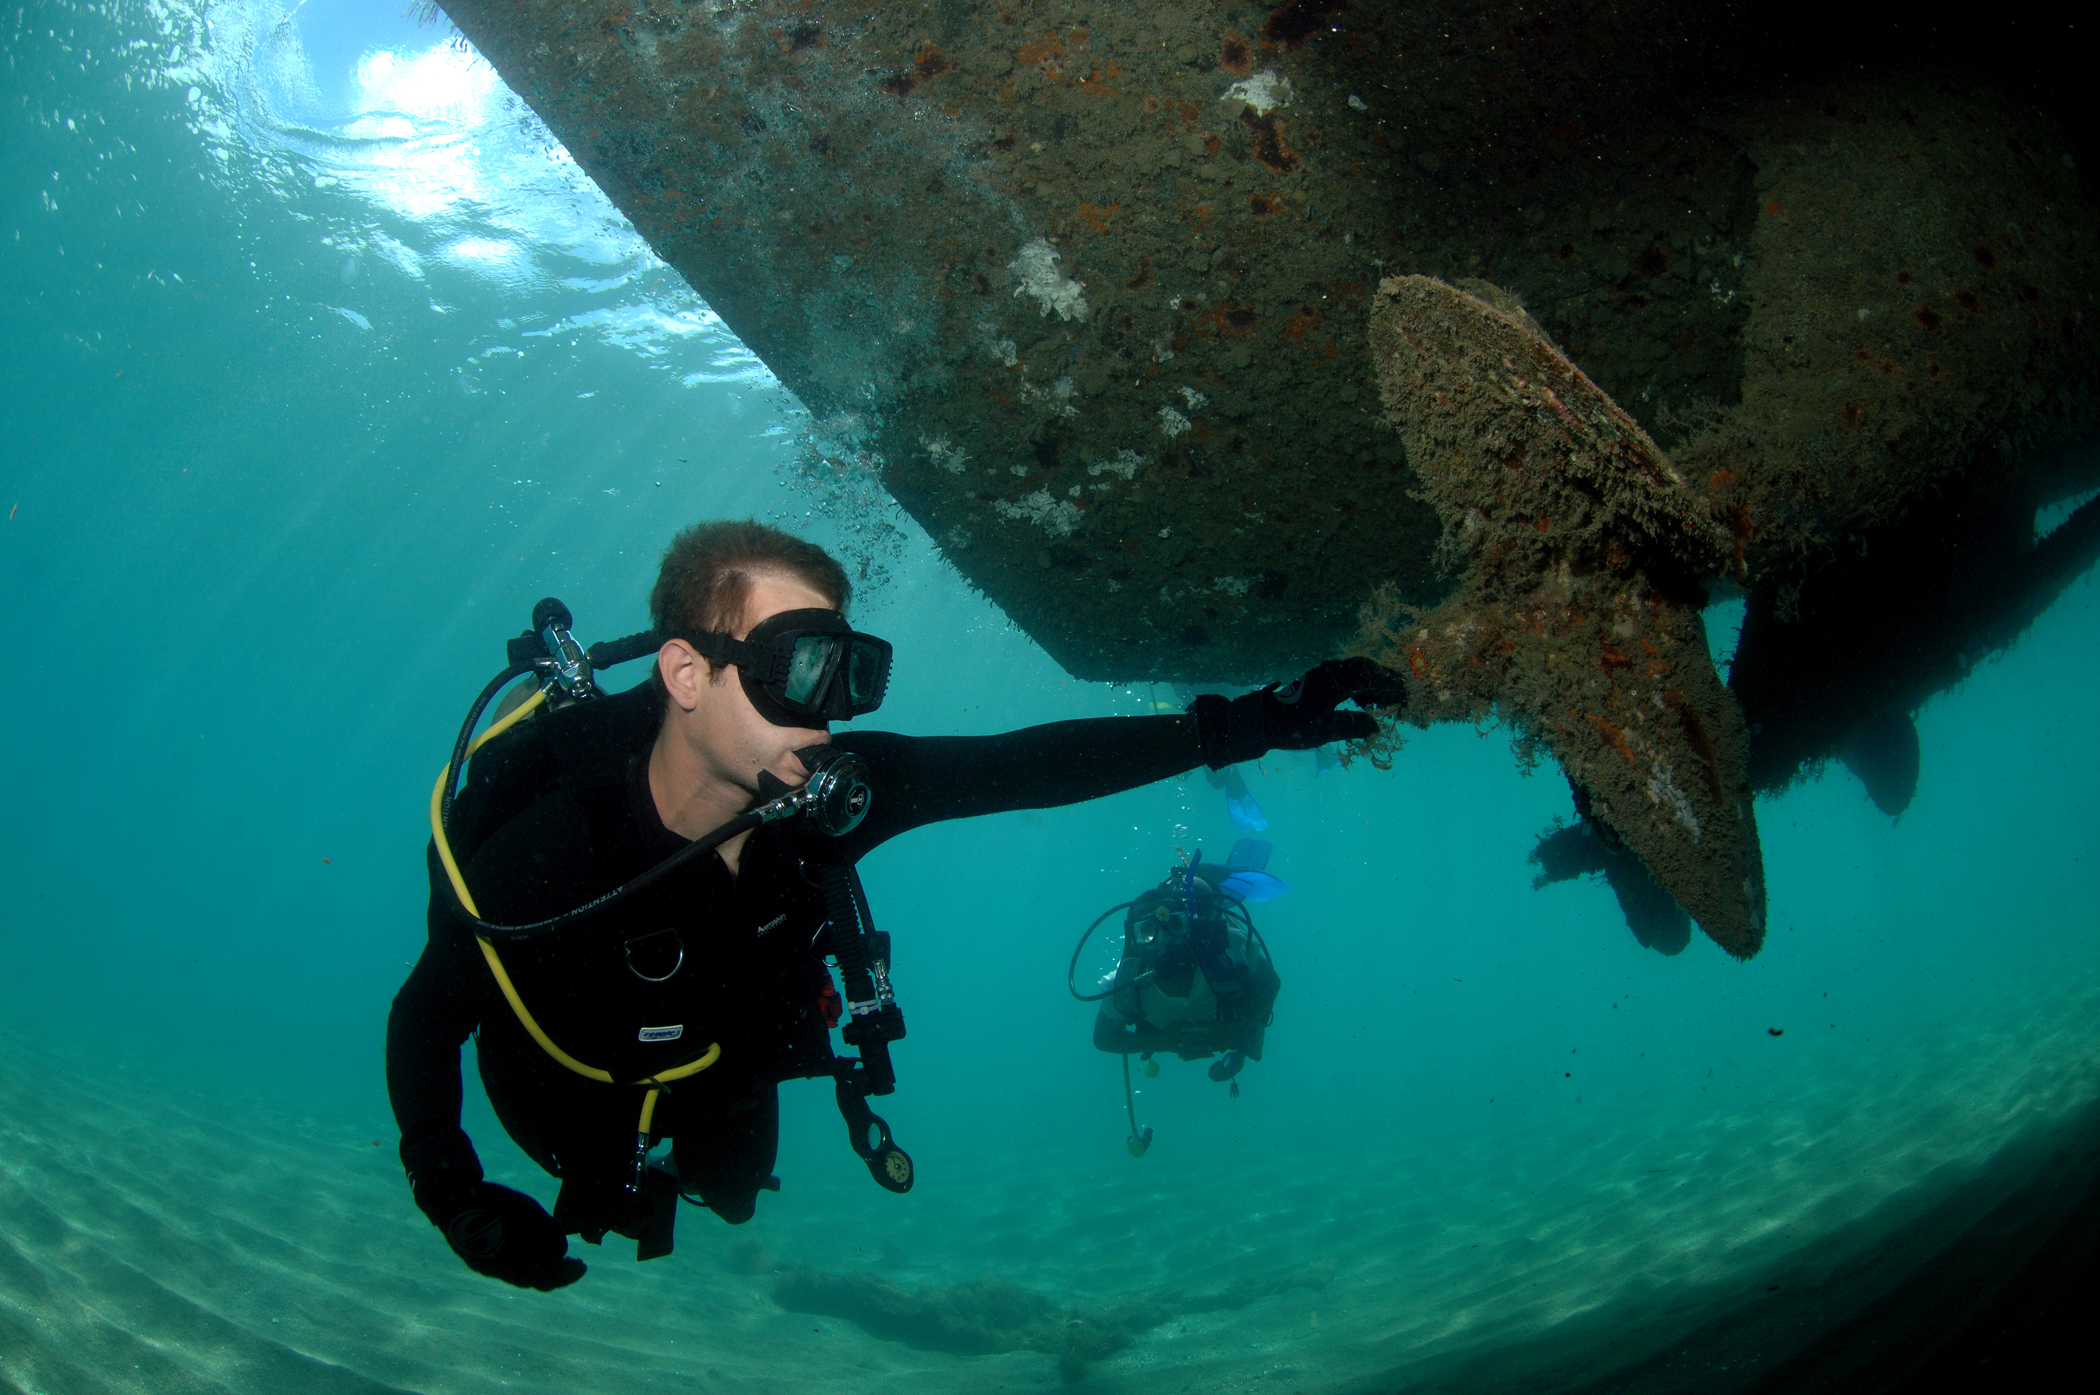 scuba divers near a sunken ship